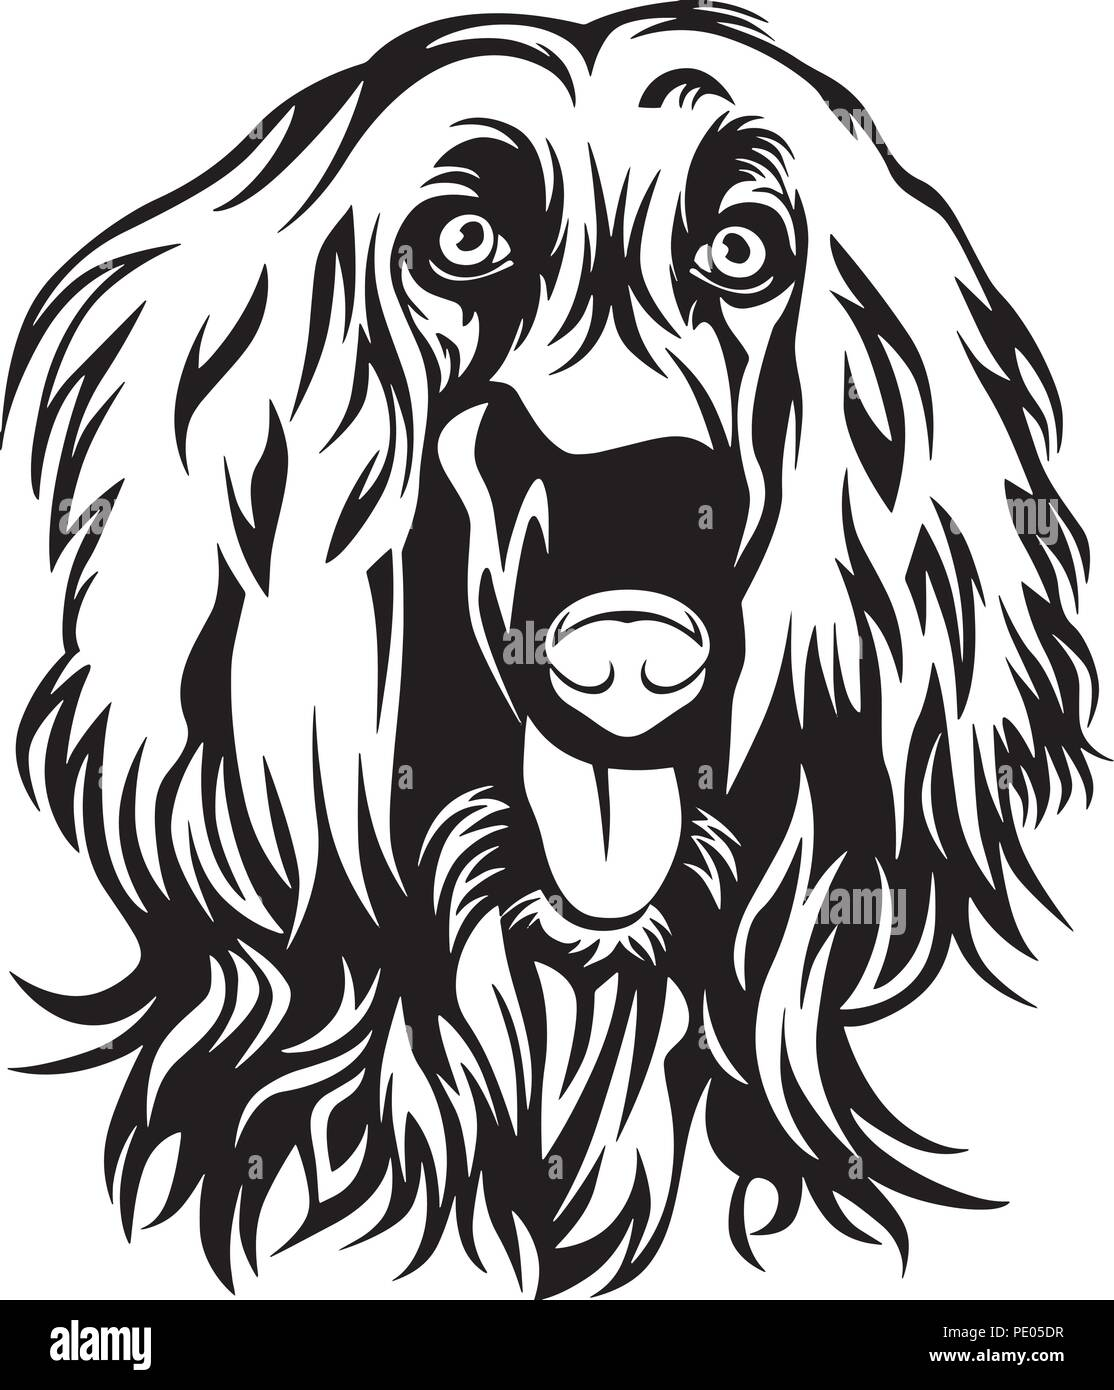 Afghan Hound Dog Breed Pet Puppy Isolated Head Face Stock Vector